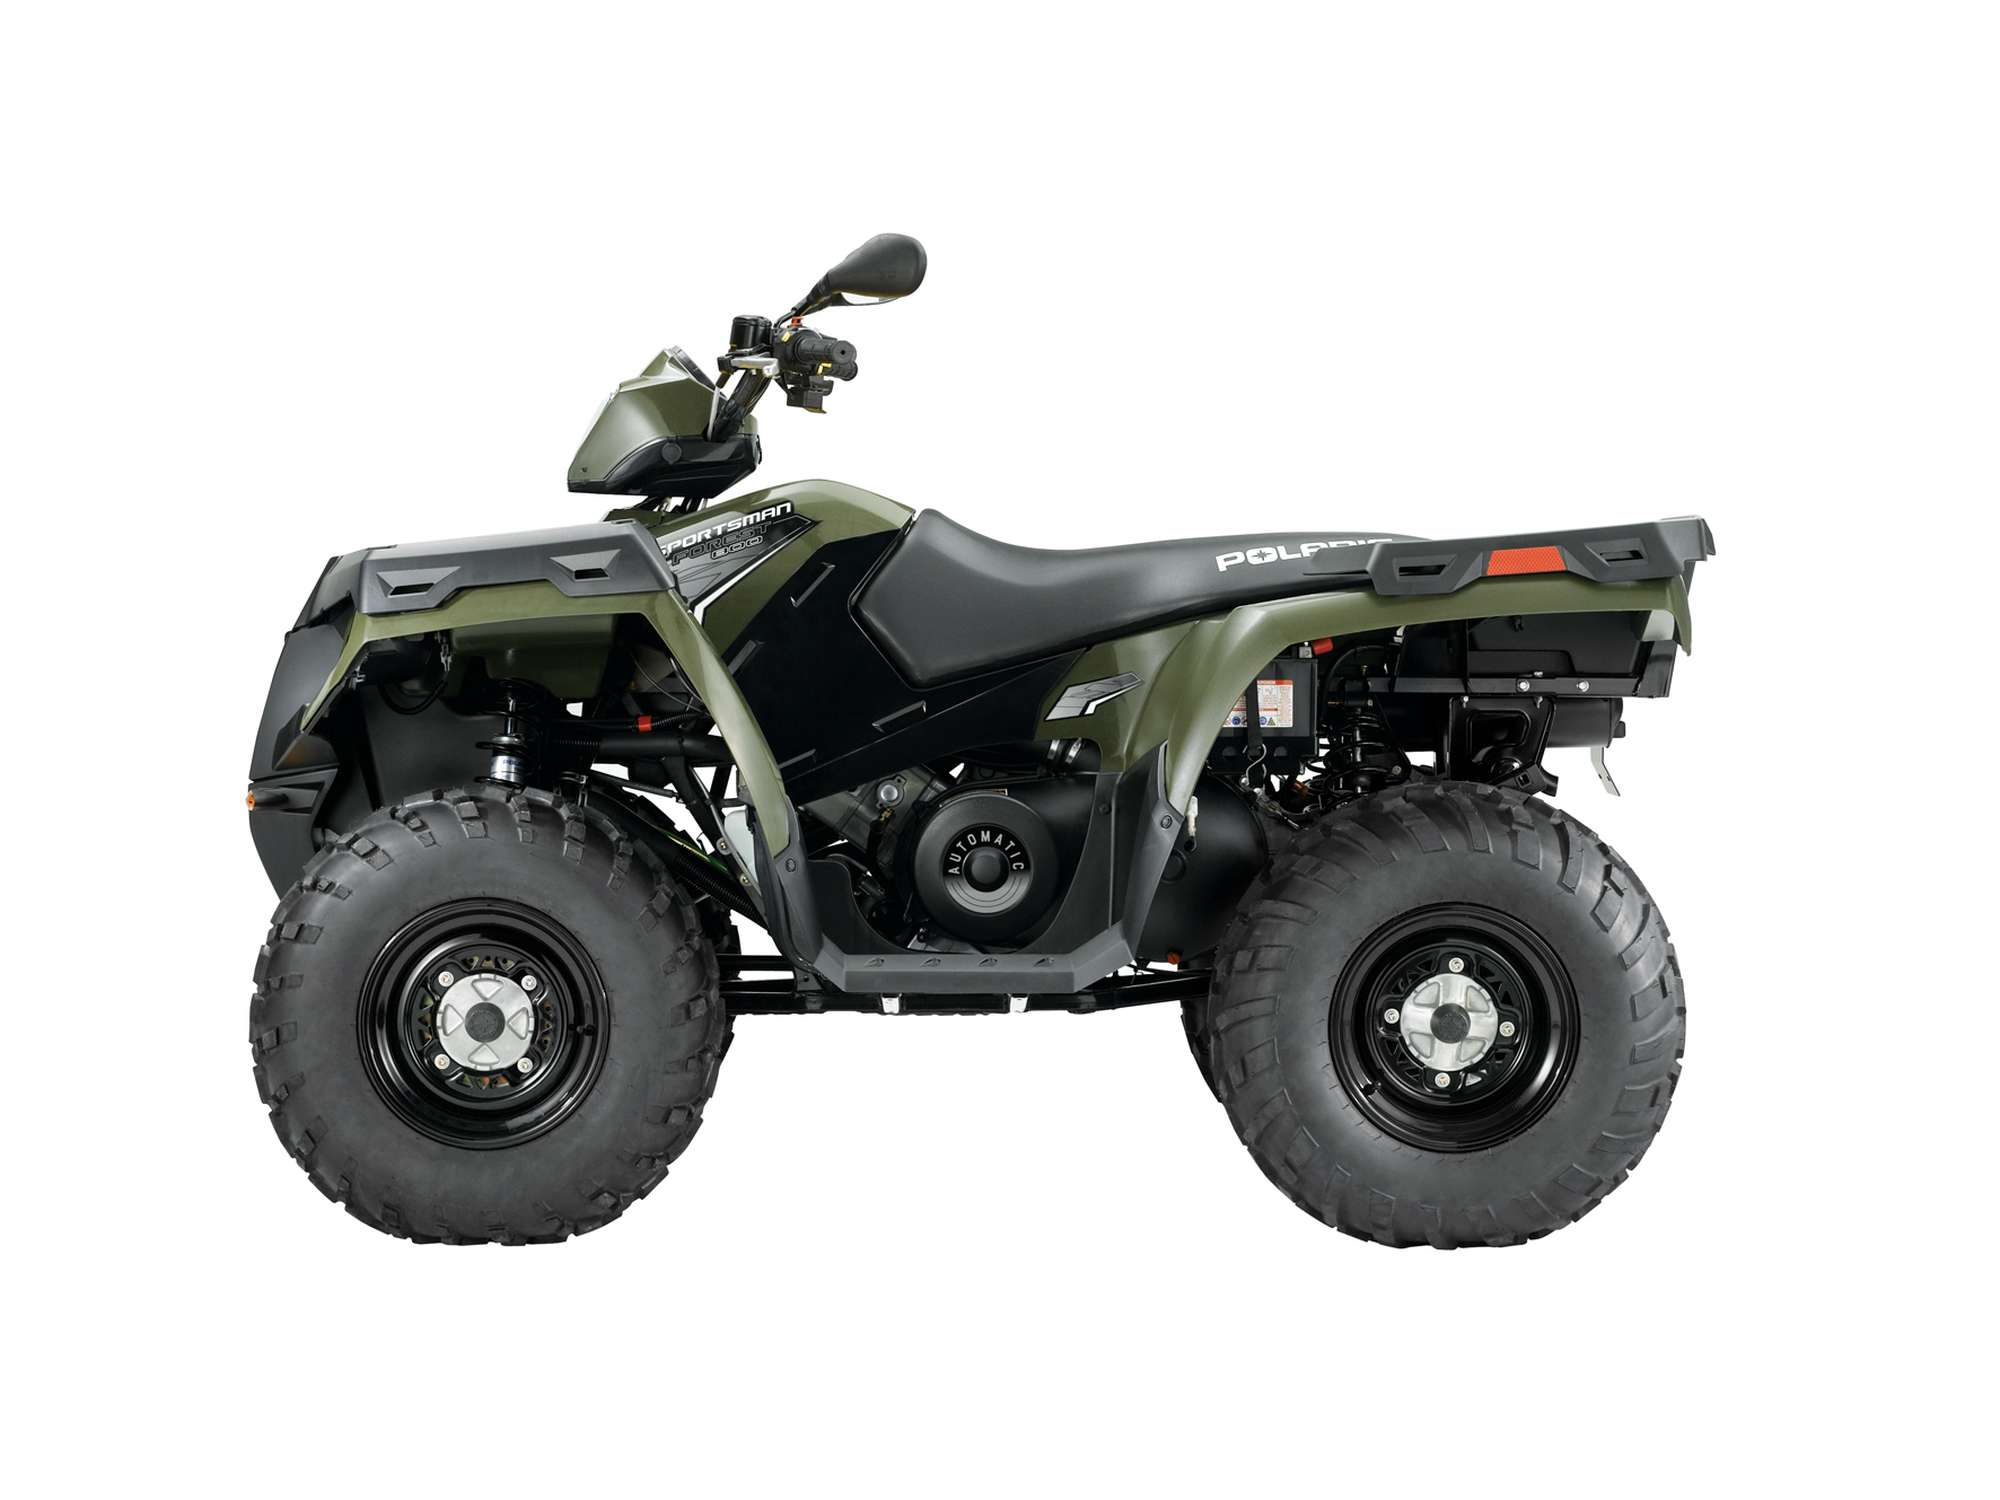 2007 Polaris Sportsman 500 Wiring Diagram Data Diagrams 700 Fuel Filter Get Free Image 2010 Ranger Schematic